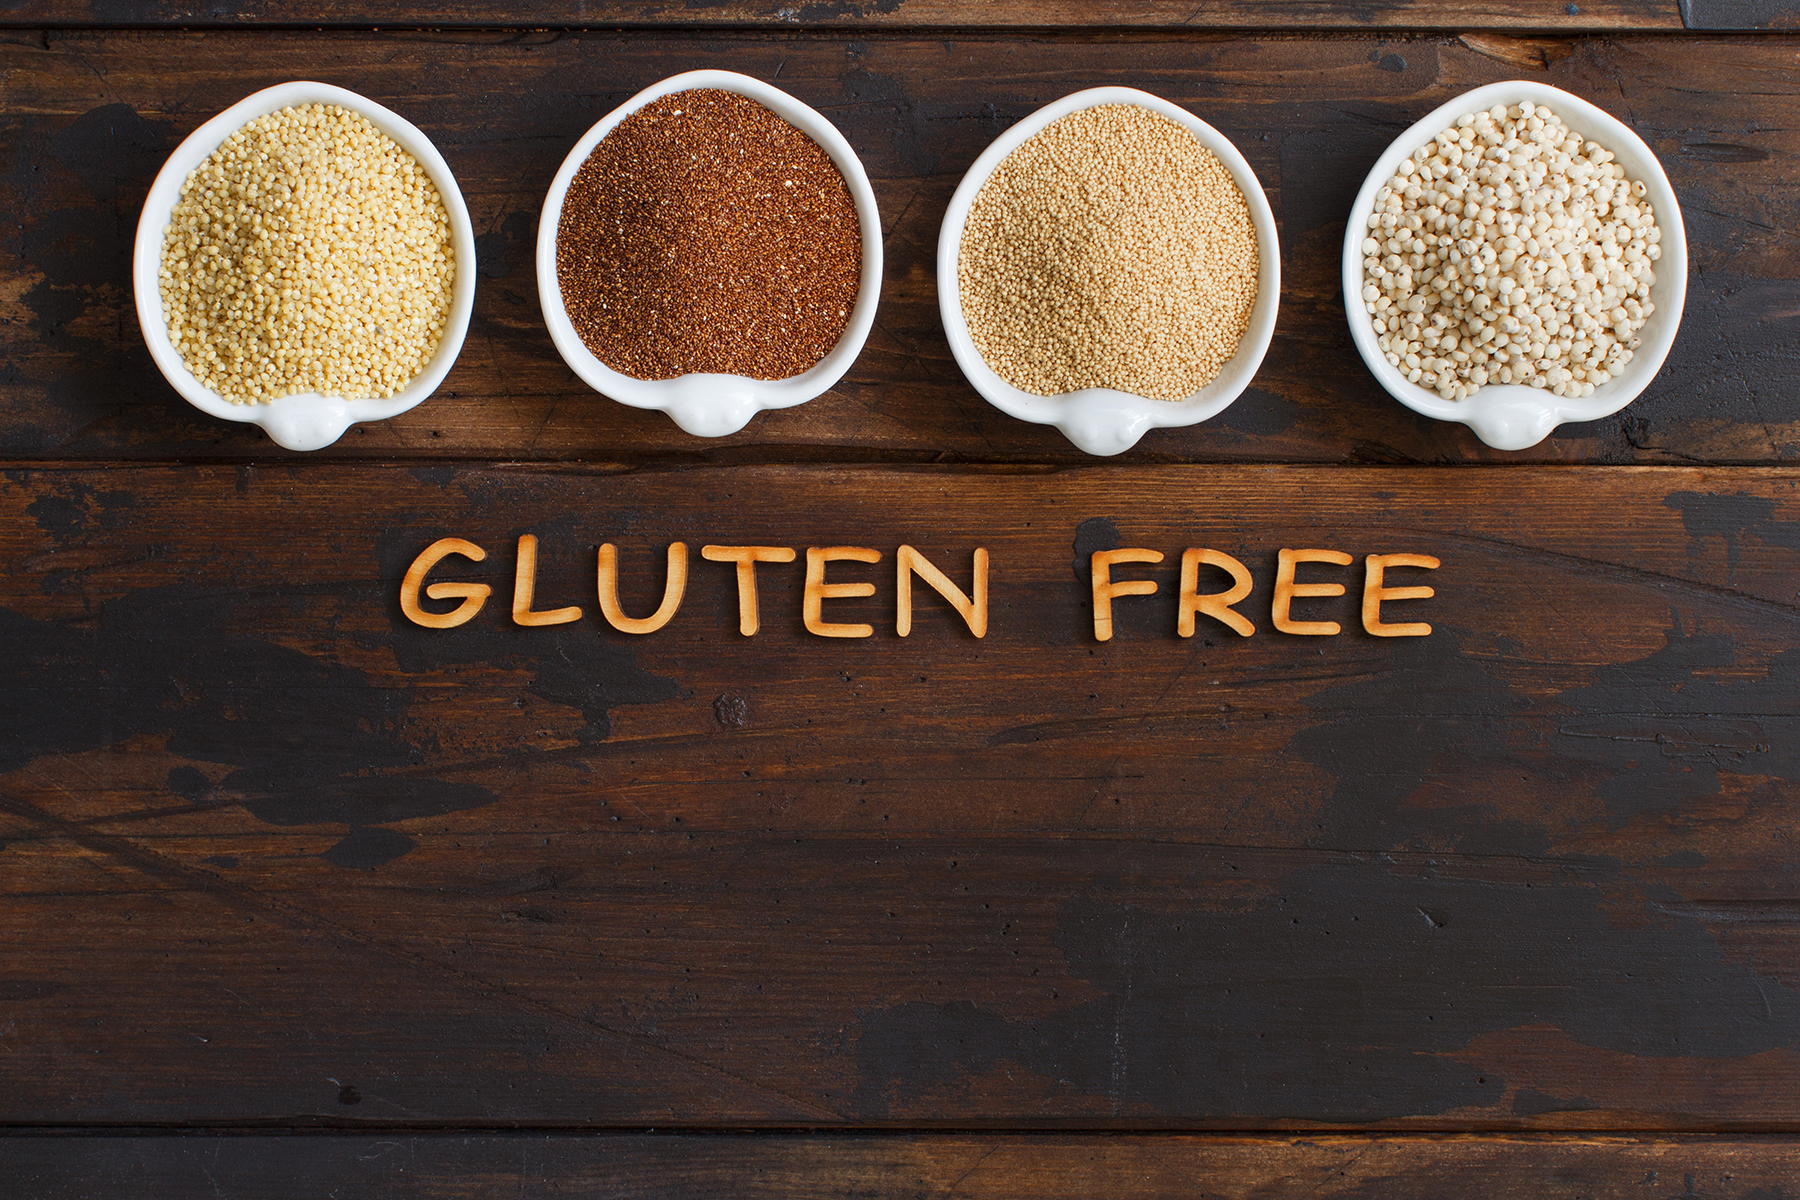 Gluten Free Menu: <strong>CLOSED DUE TO FIRE</strong> — The